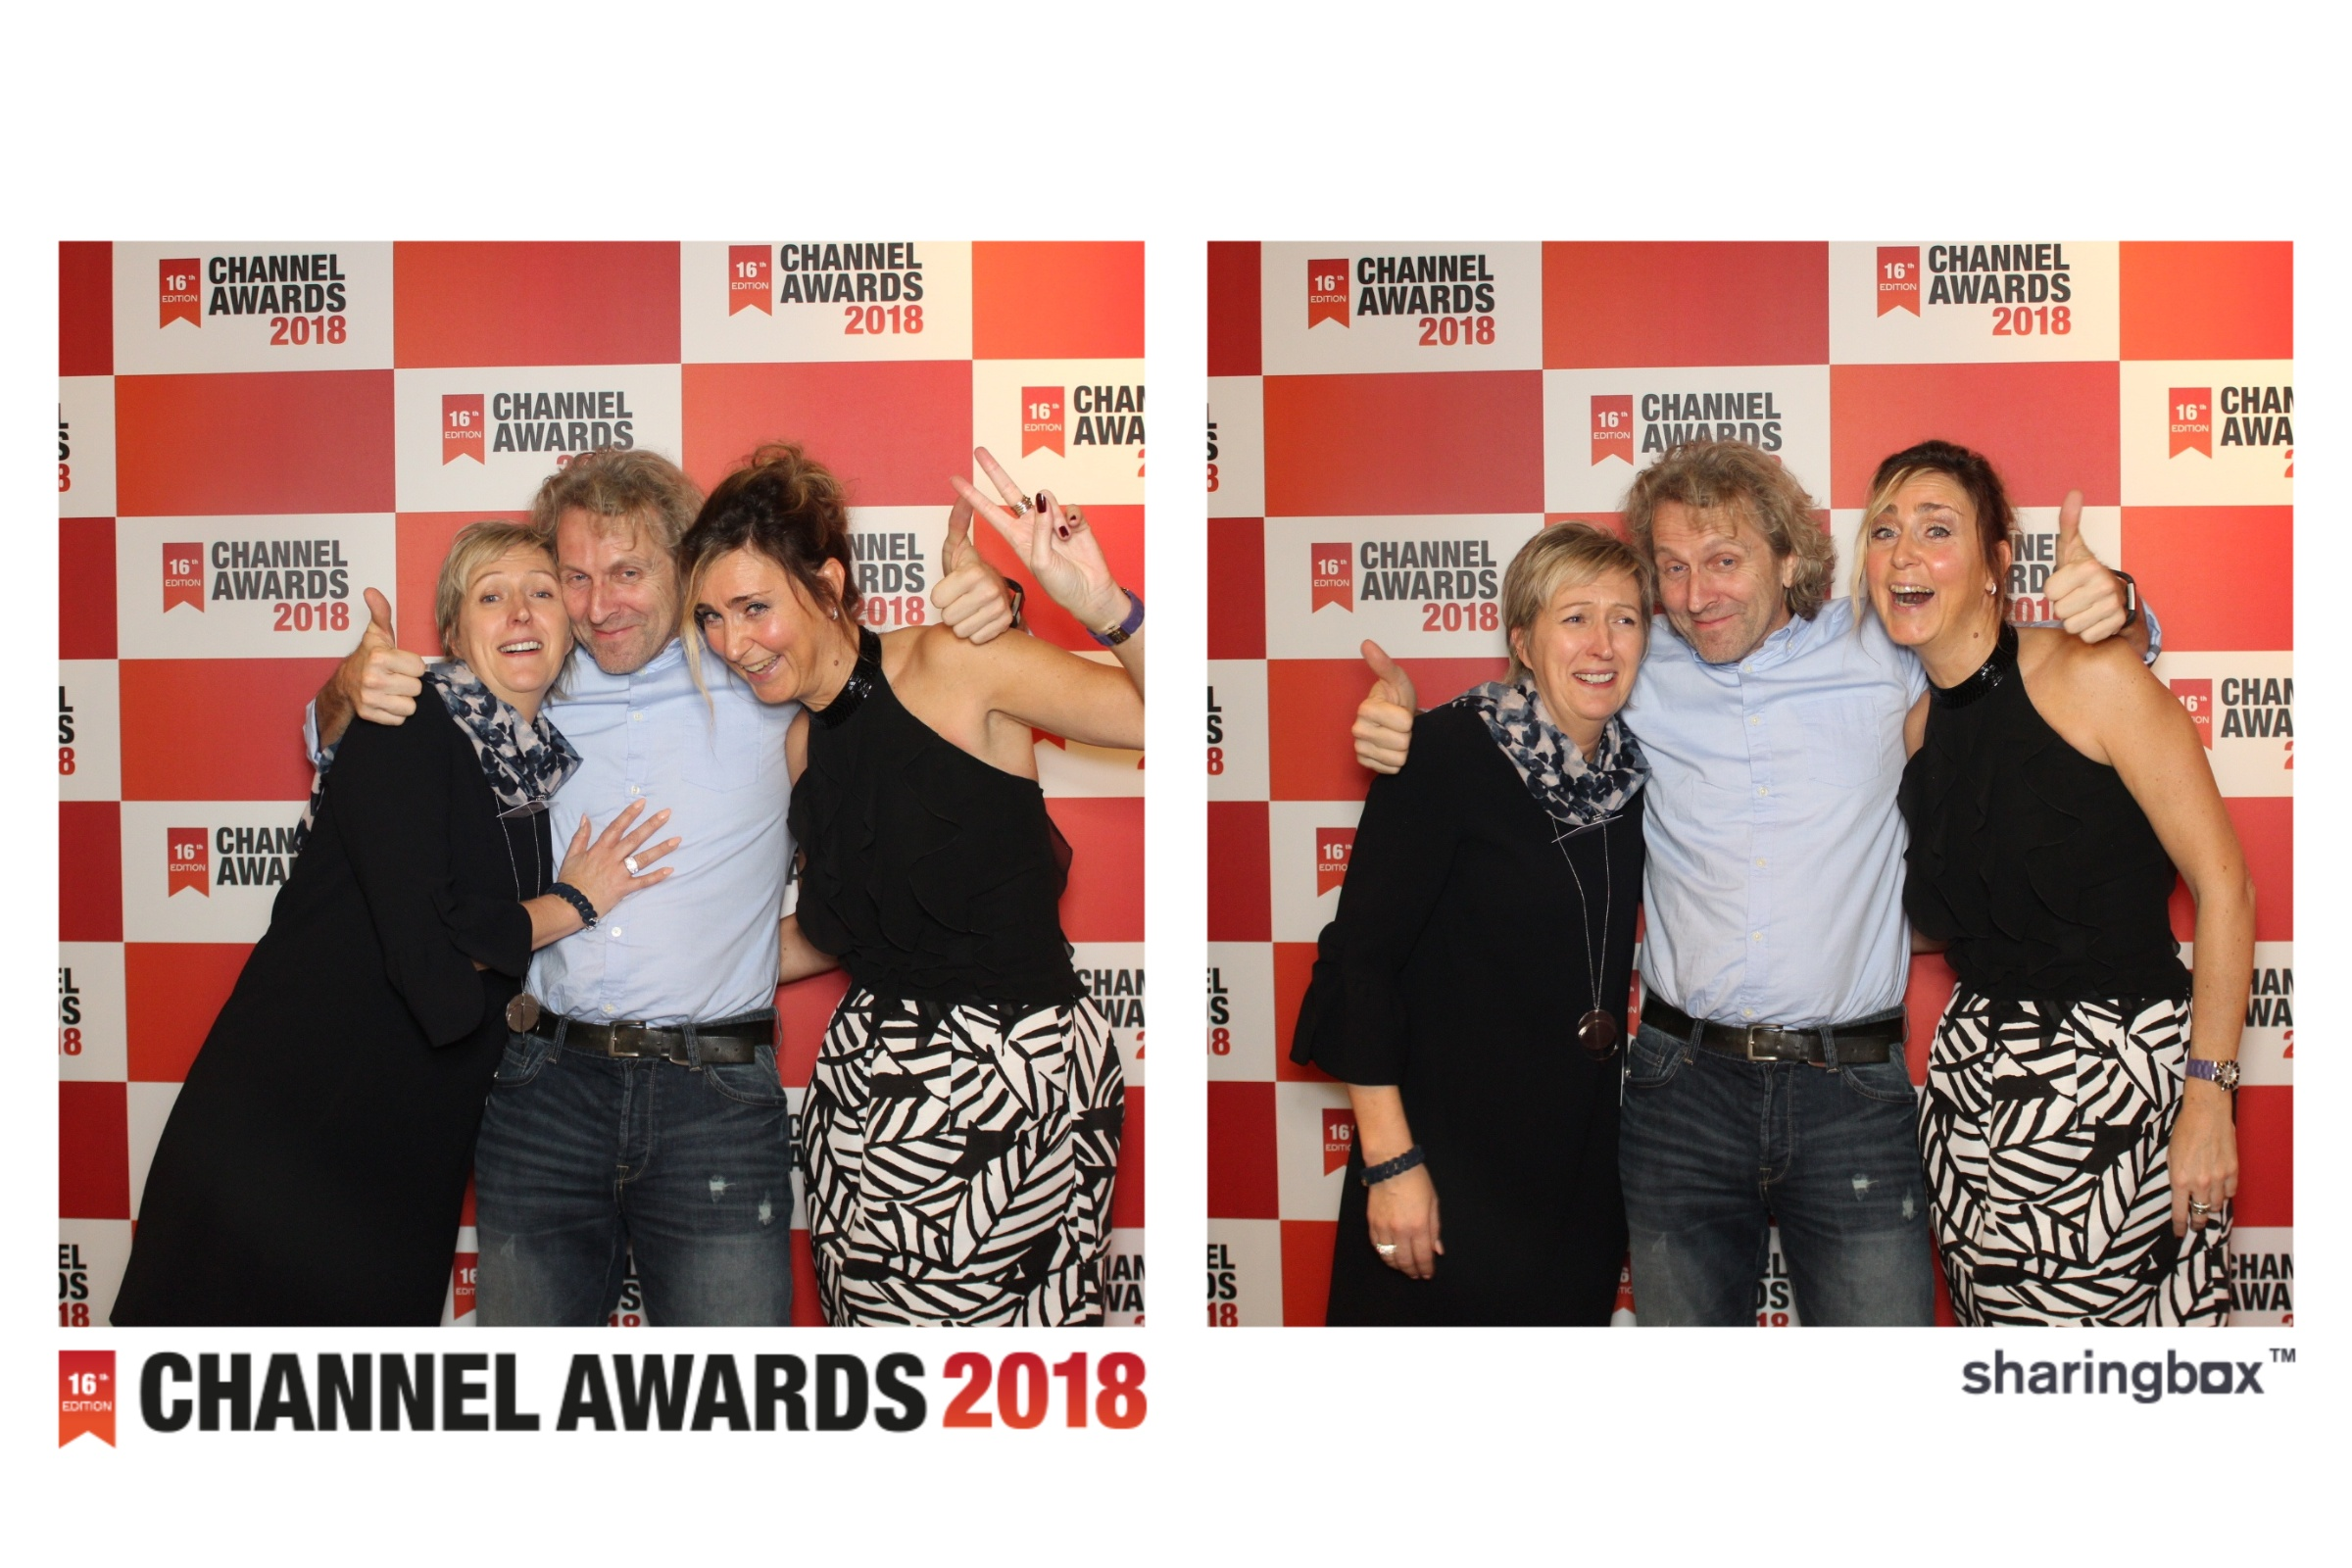 channelawards